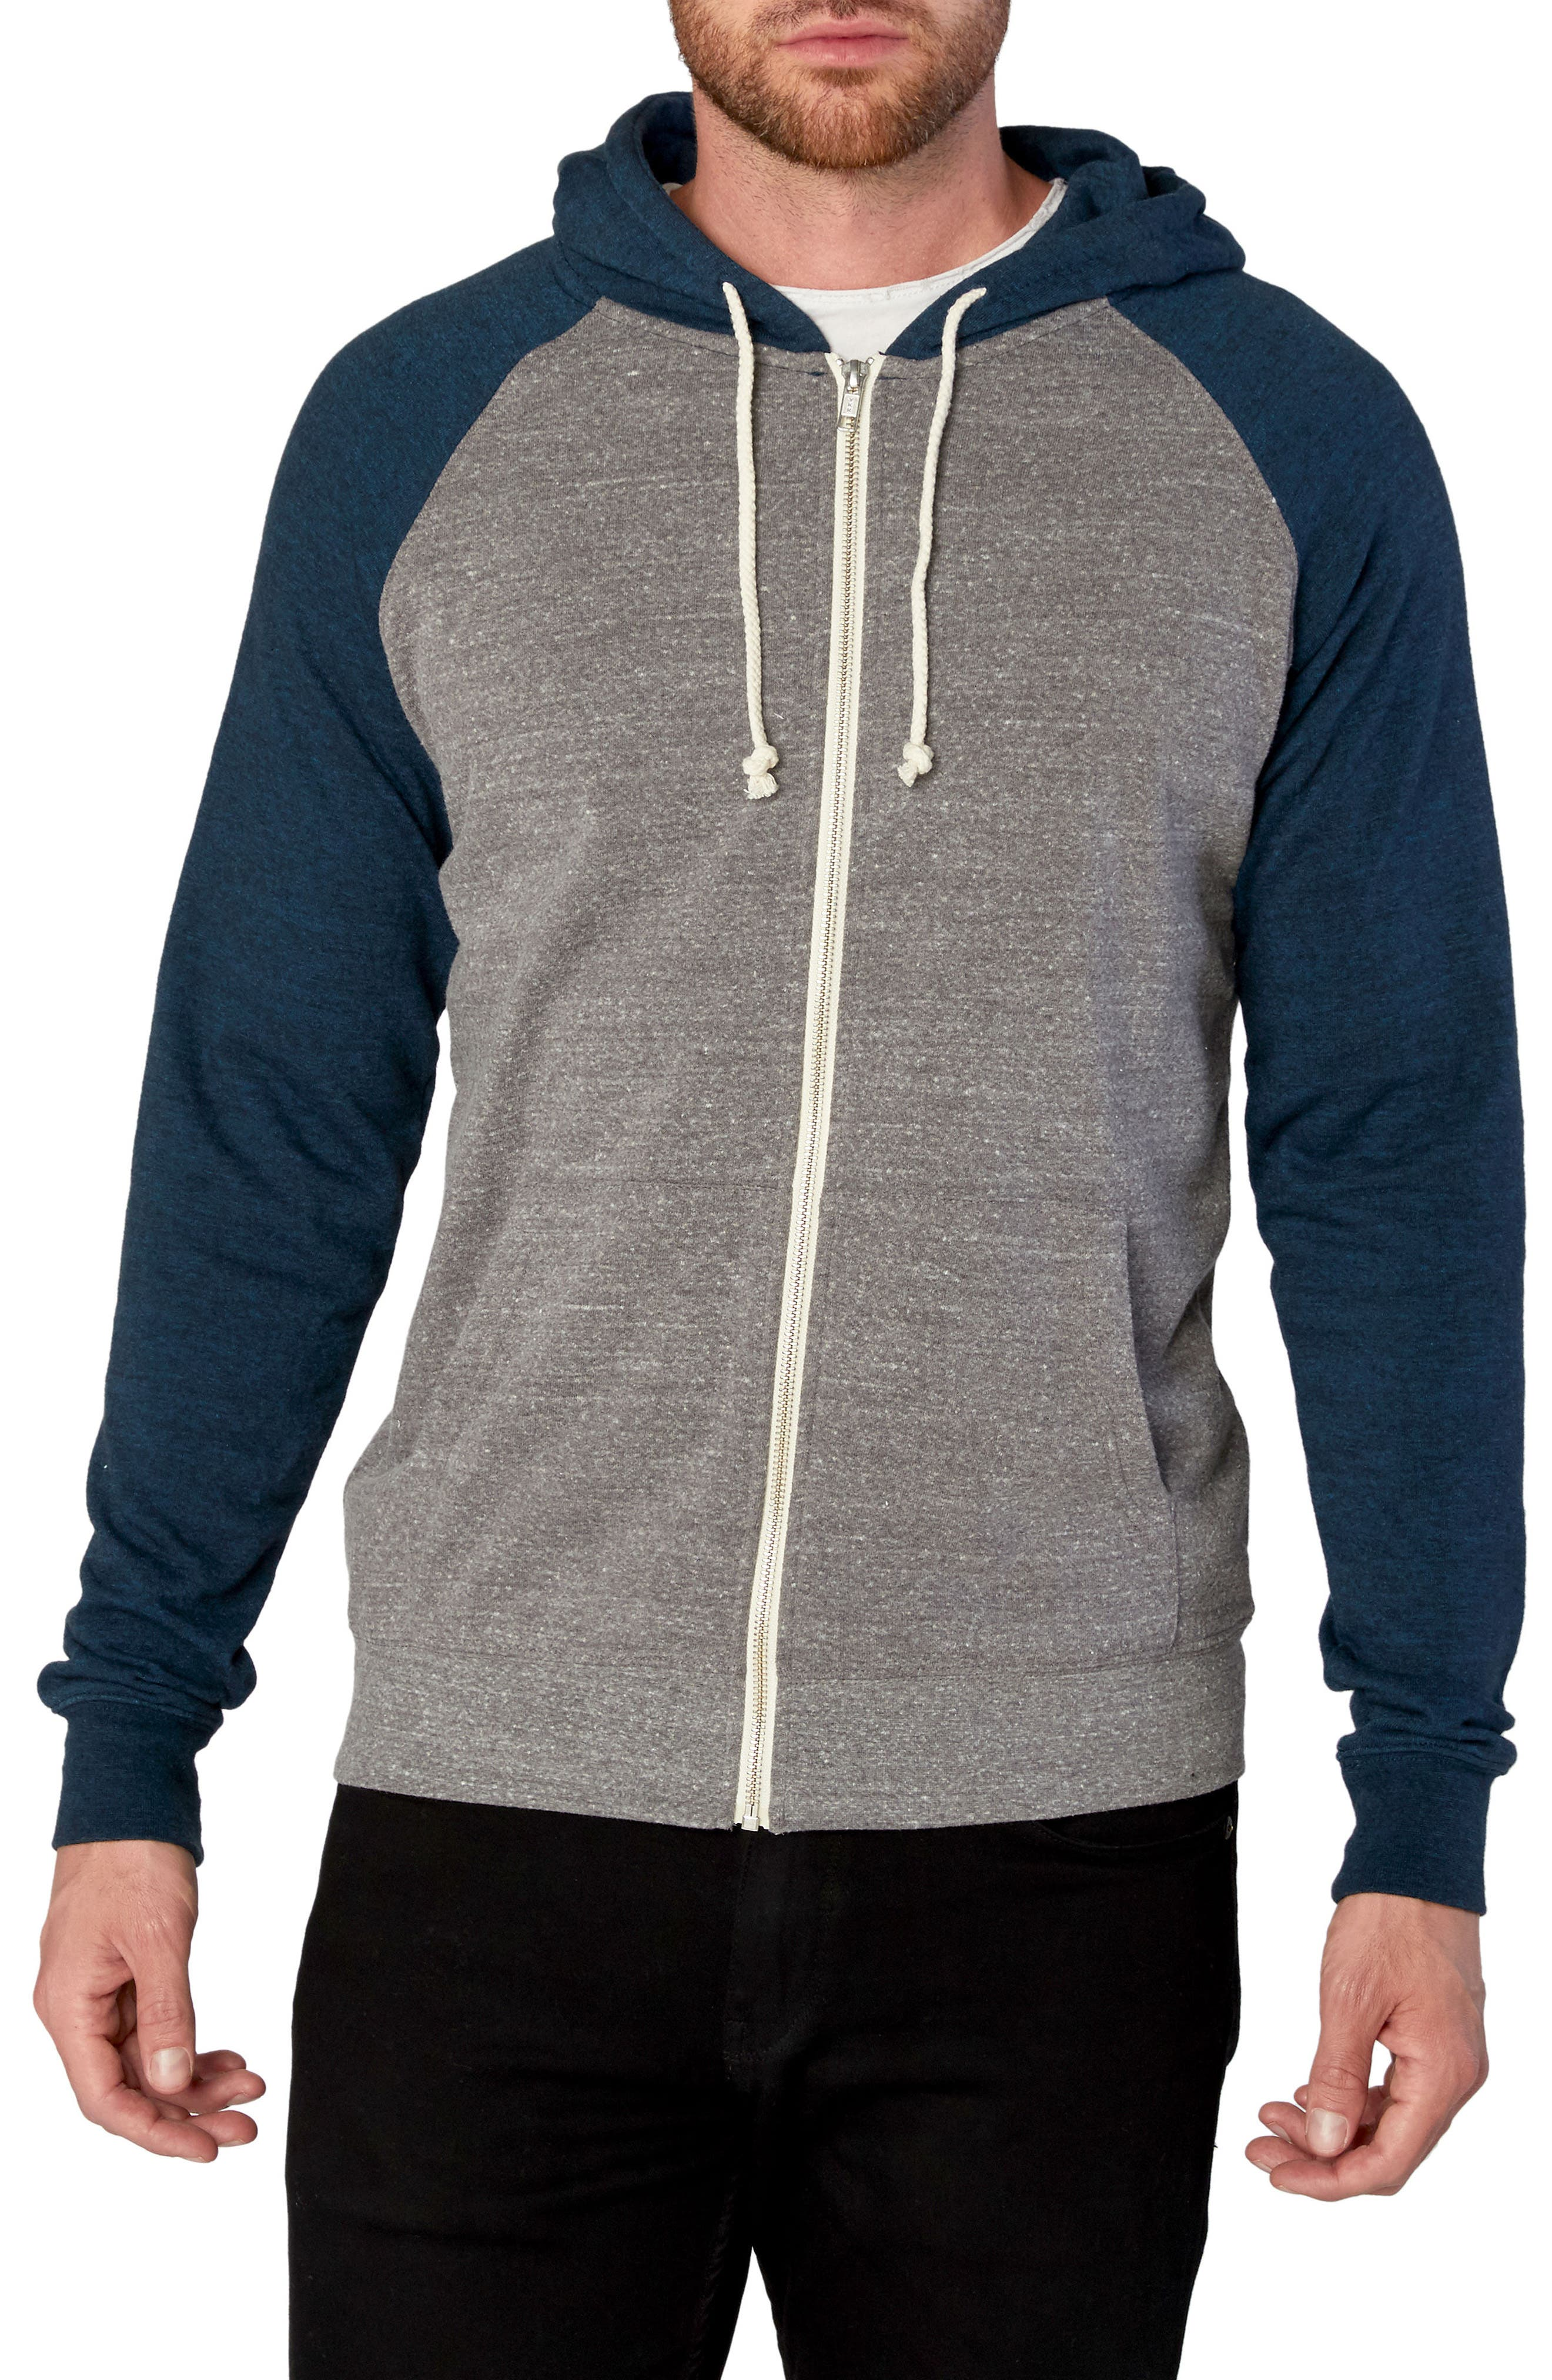 Threads for Thought Raglan Hoodie,                         Main,                         color, Heather Grey/ Midnight